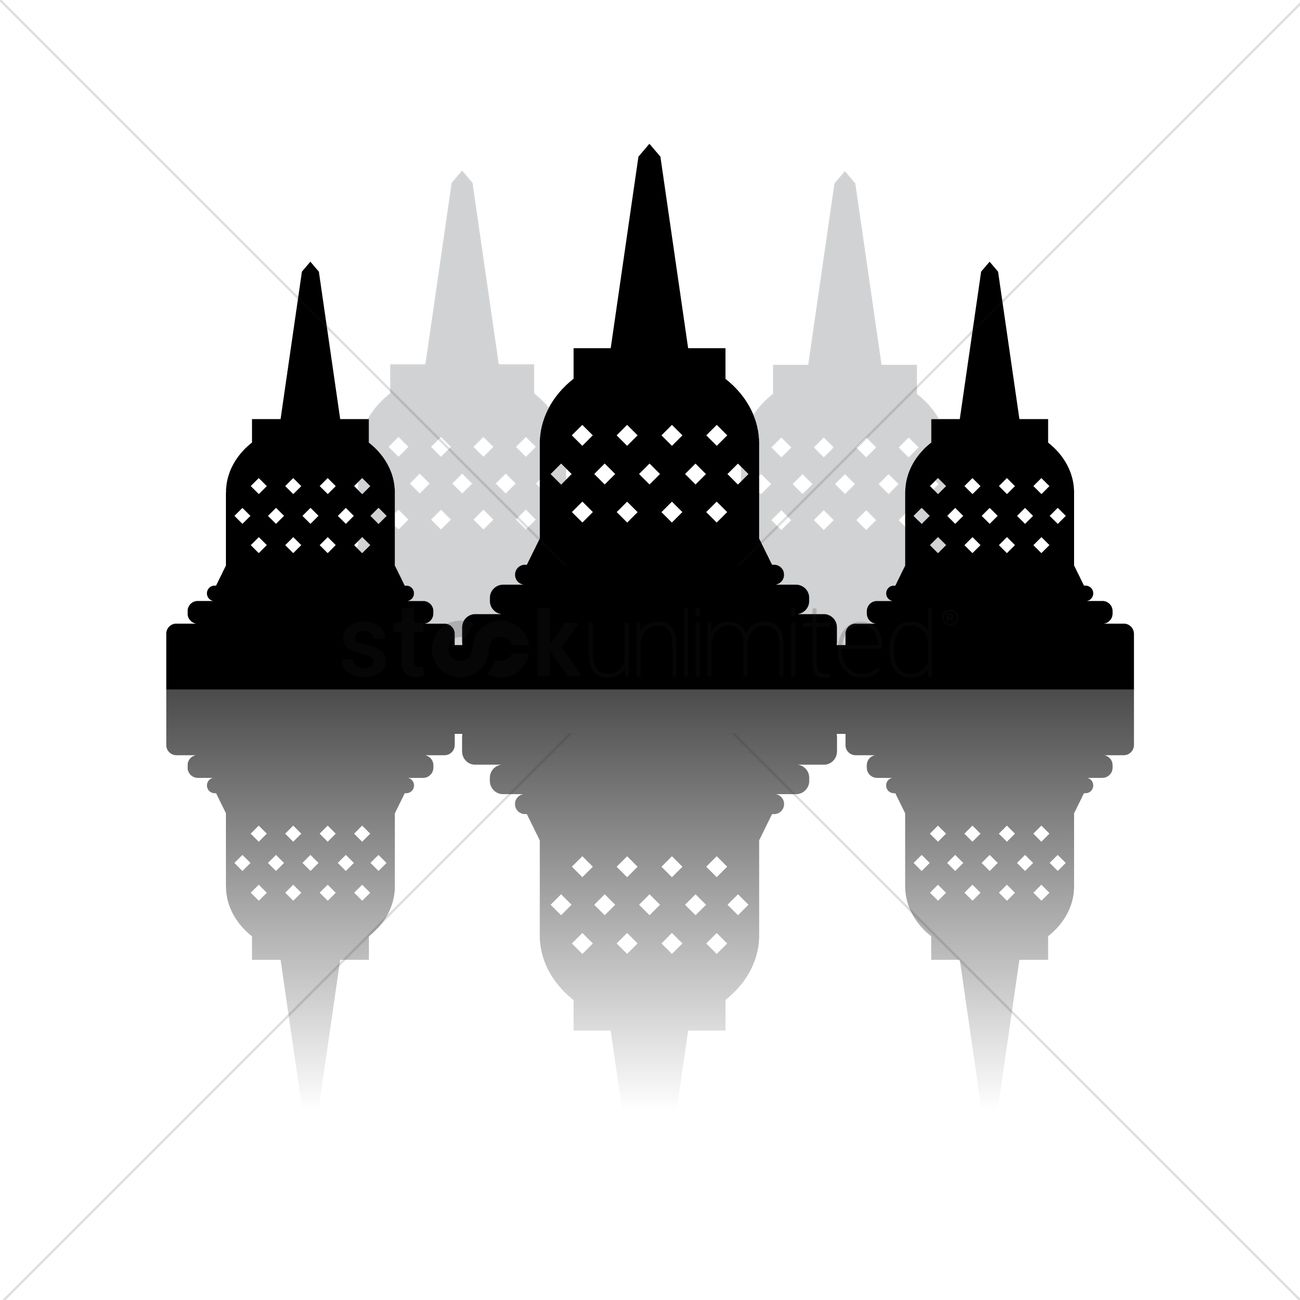 Borobudur and indonesia national monument Vector Image.